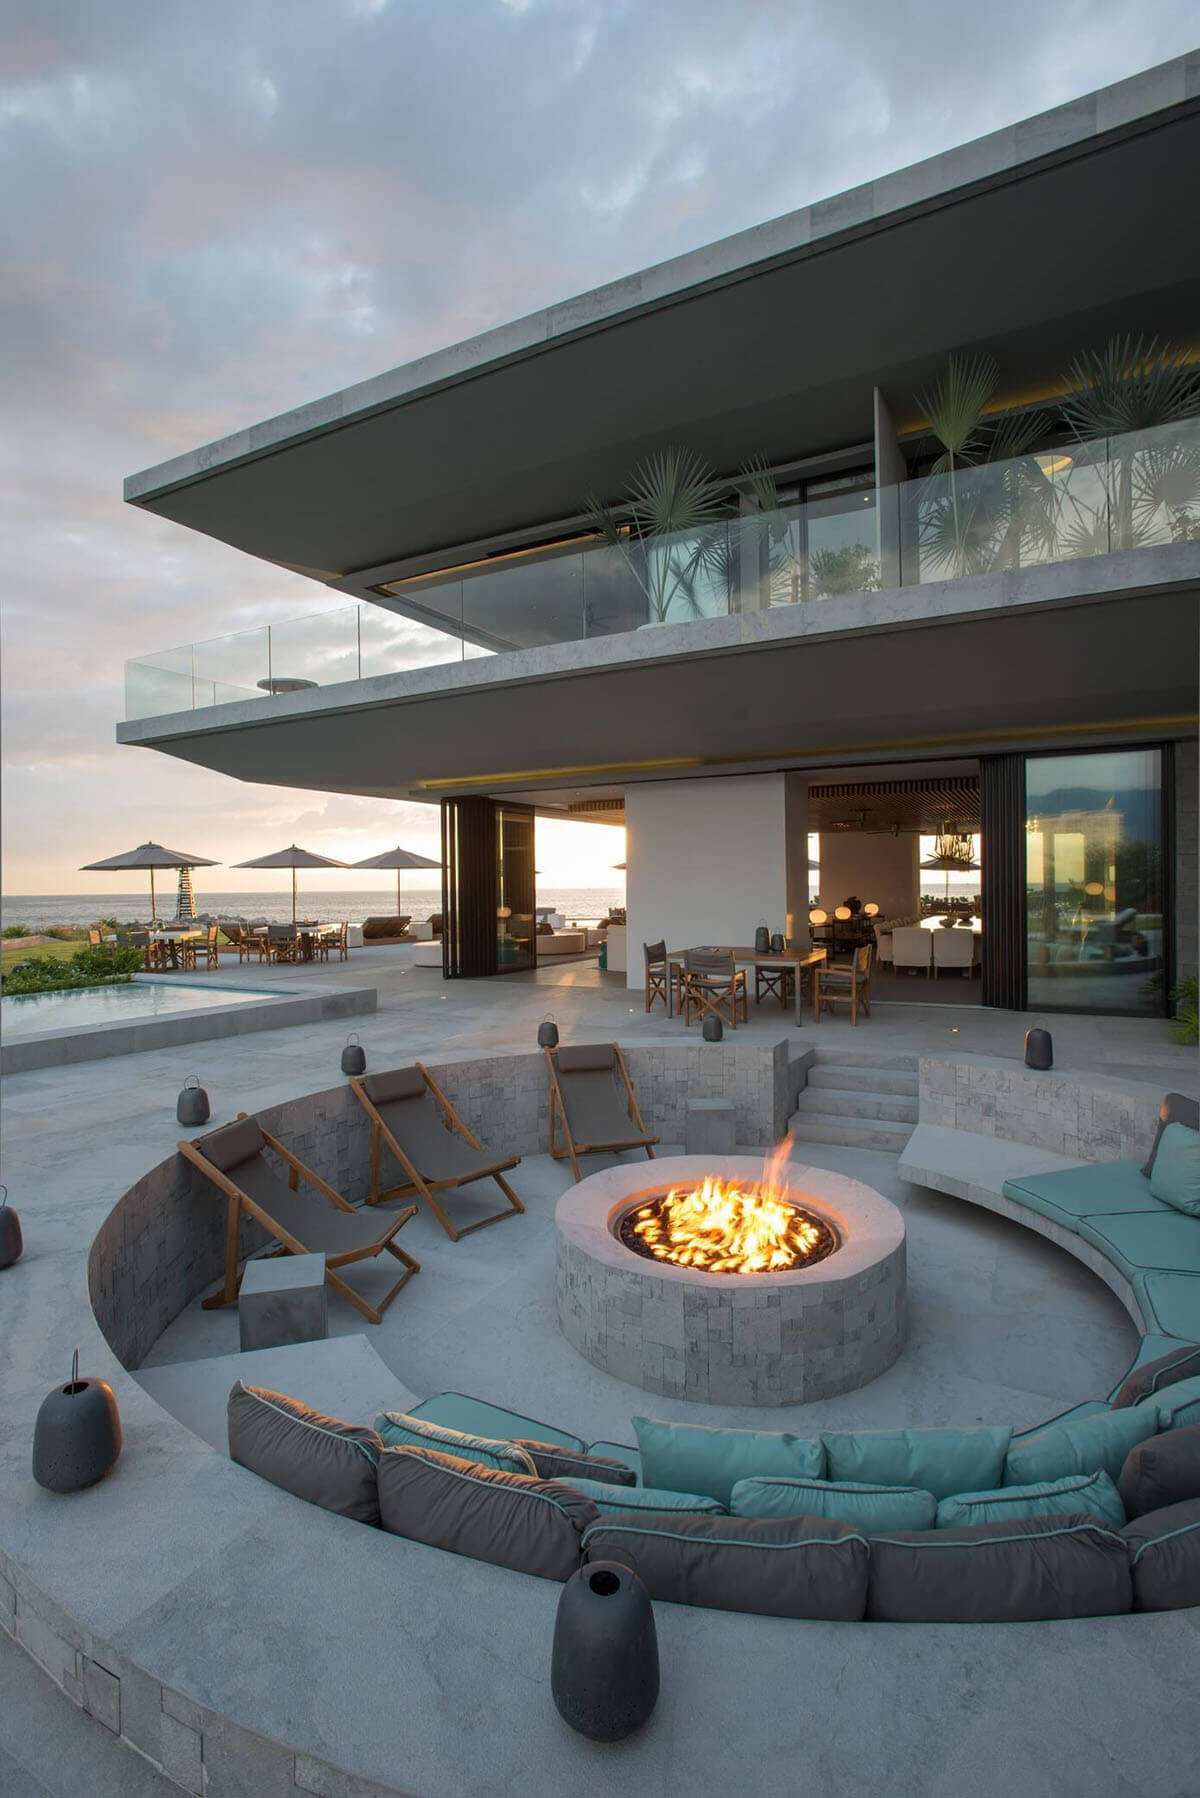 A Sunken Concrete Firepit with Comfortable Seating